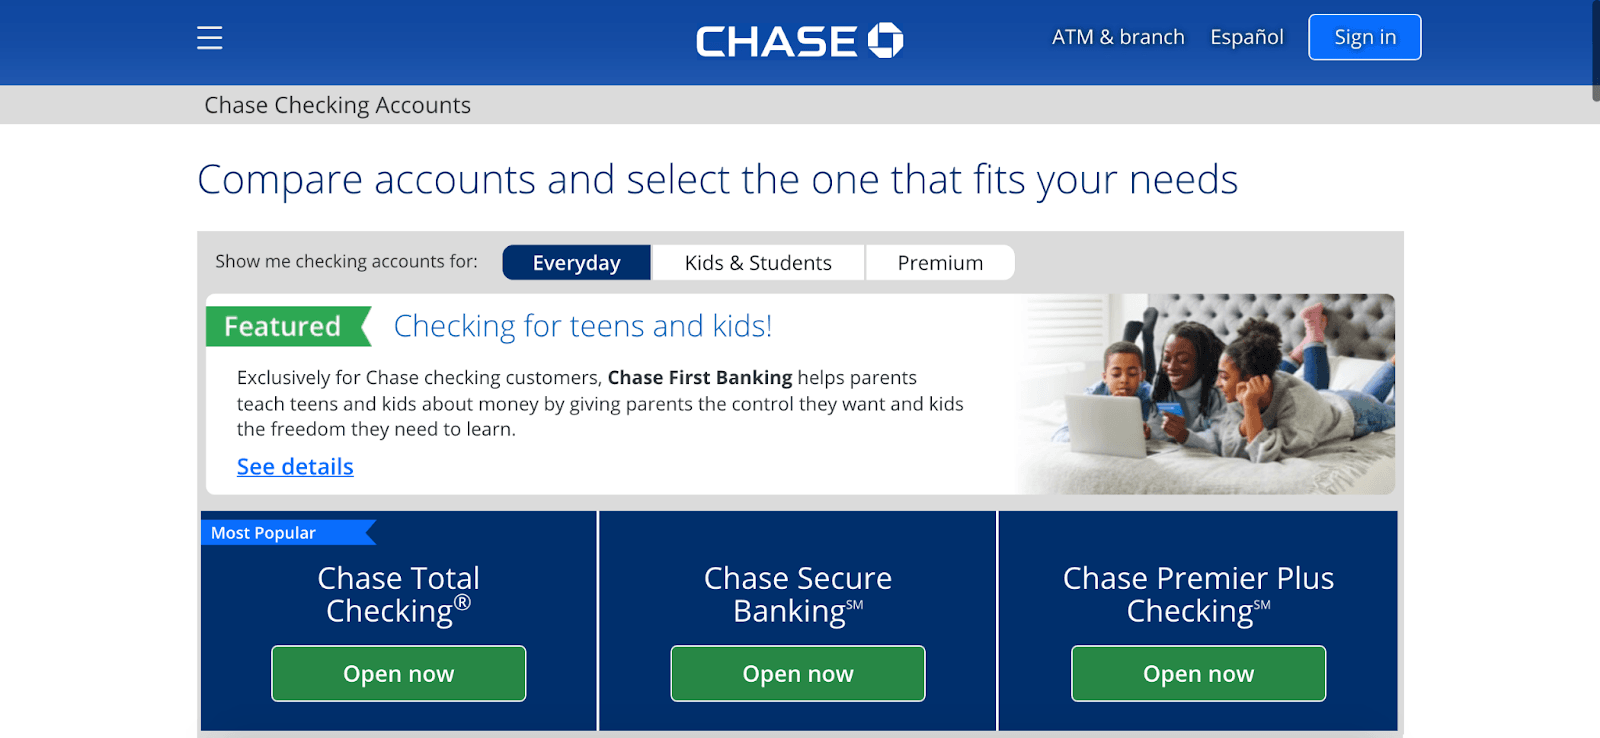 Chase Bank Review: Combining Online And Local Banking - Compare accounts